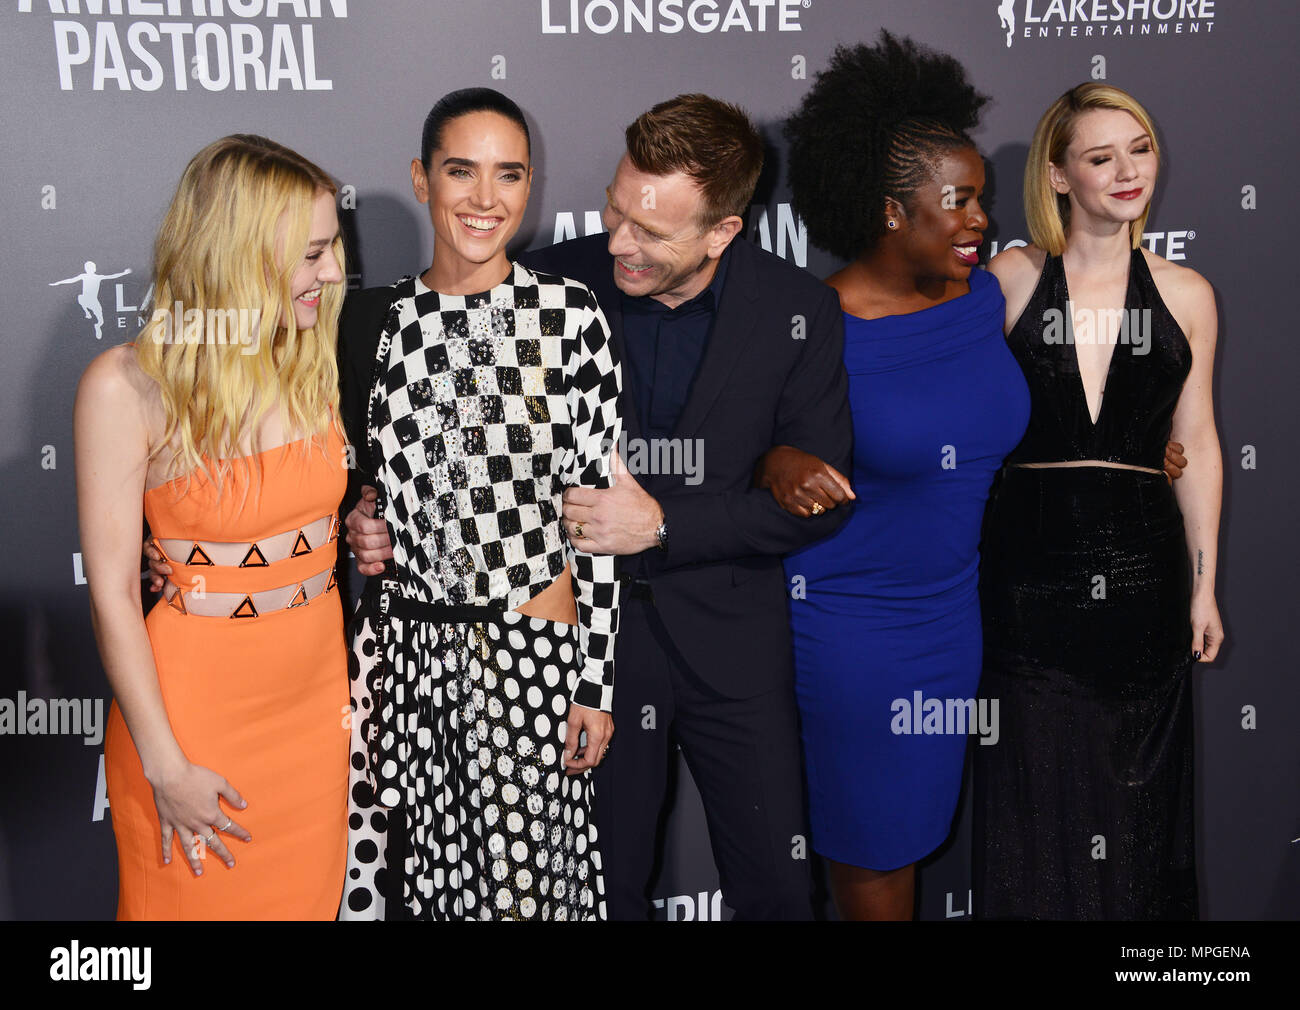 Valorie curry jennifer connelly 039american pastoral039 - 4 7